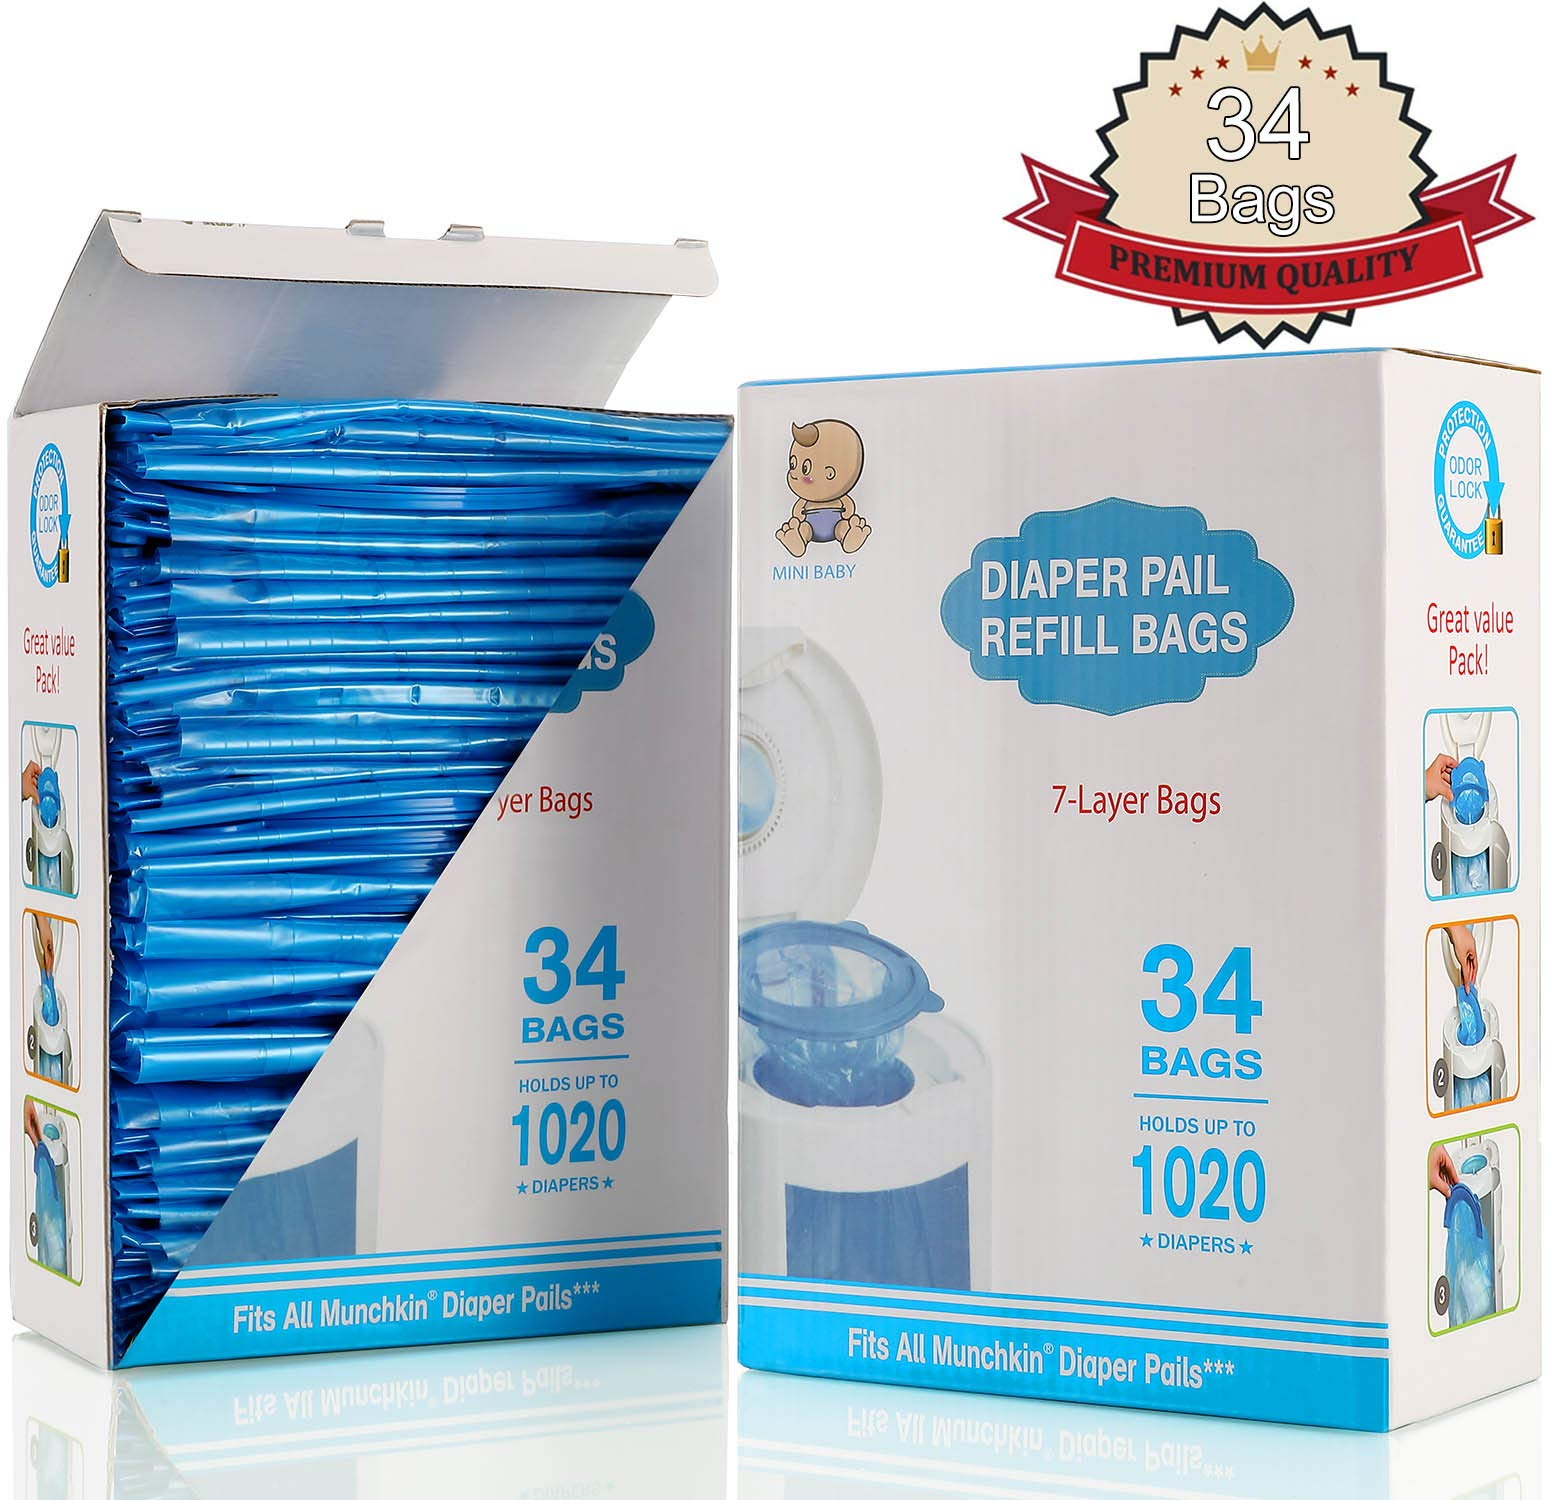 Diaper Pail Refill Bags, Fully Compatible with Arm&Hammer Disposal System Seal and Toss Diaper Pail Refills,1020 Counts, 34 Bags by DDM